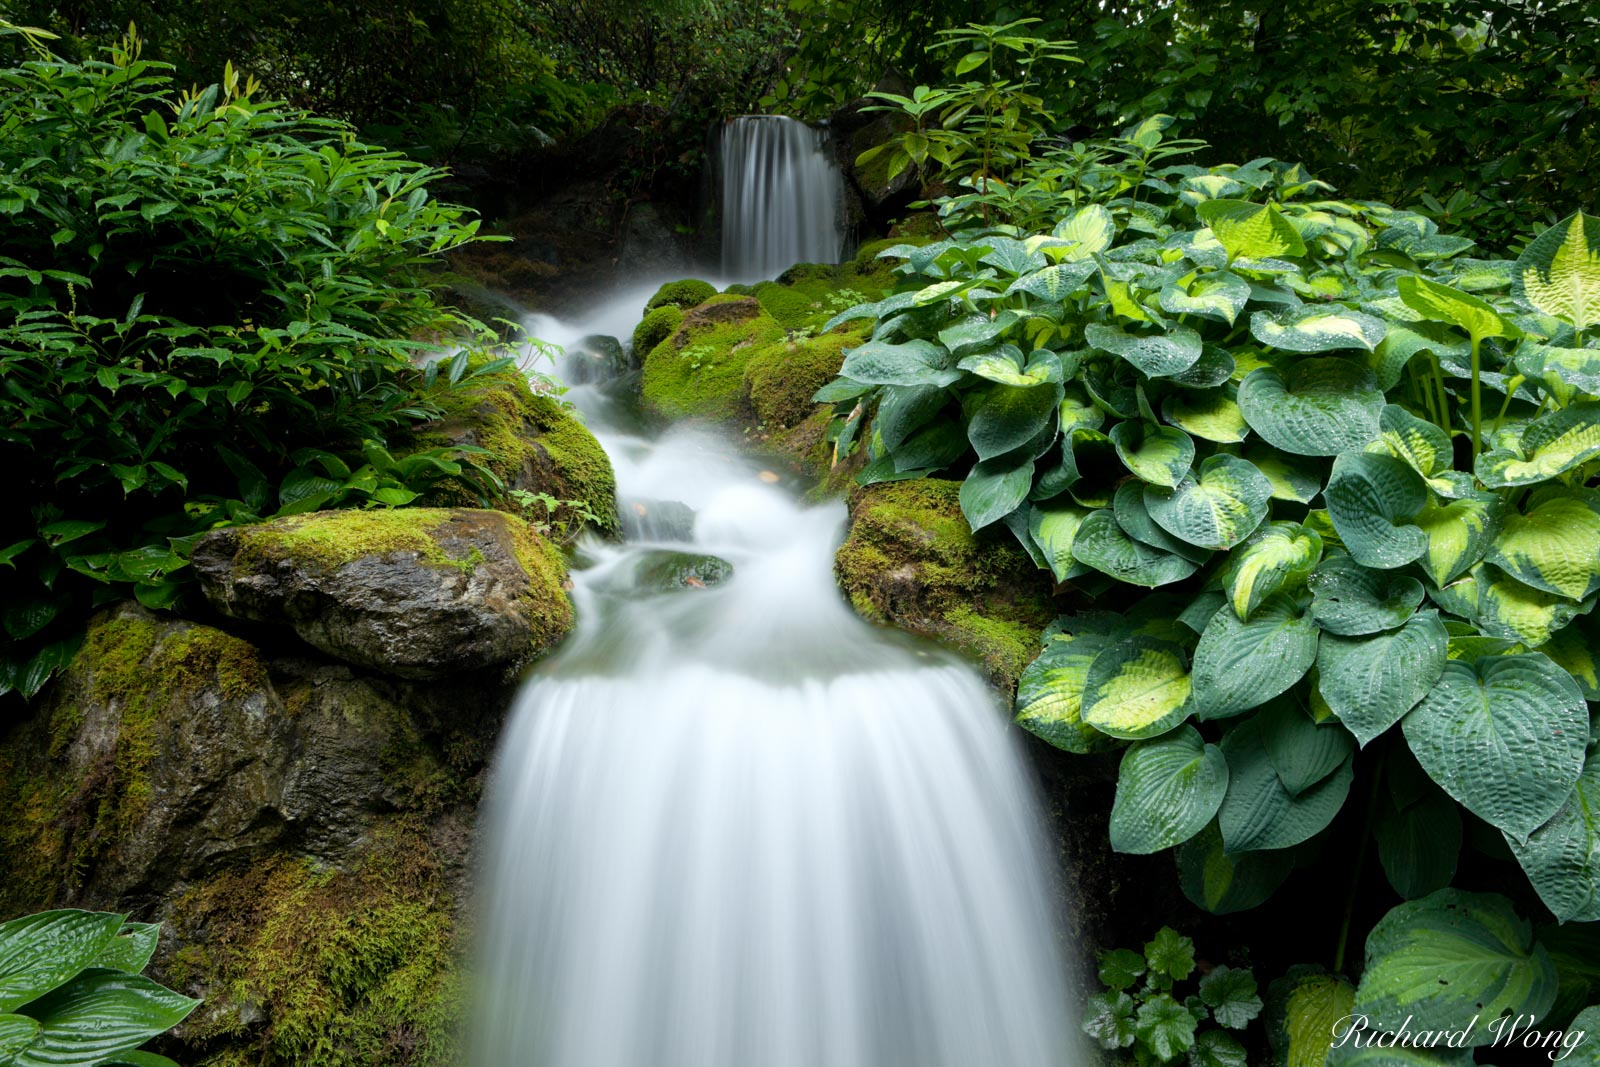 Minter Gardens Waterfall, Chlliwack, British Columbia Like the garden of eden, I found myself in blissful peace photographing...